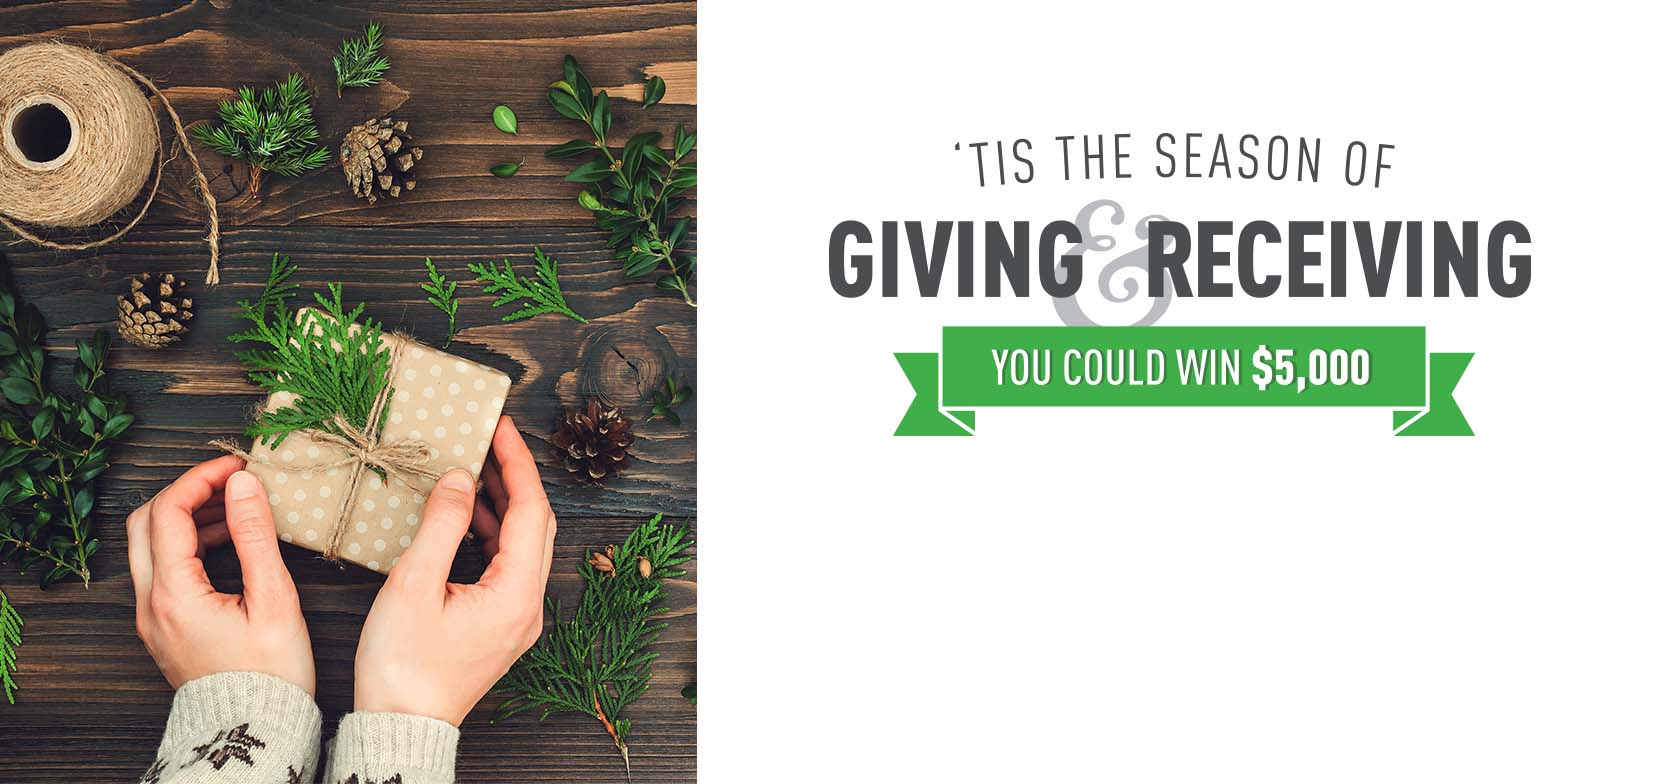 Season of Giving and Receiving 2018